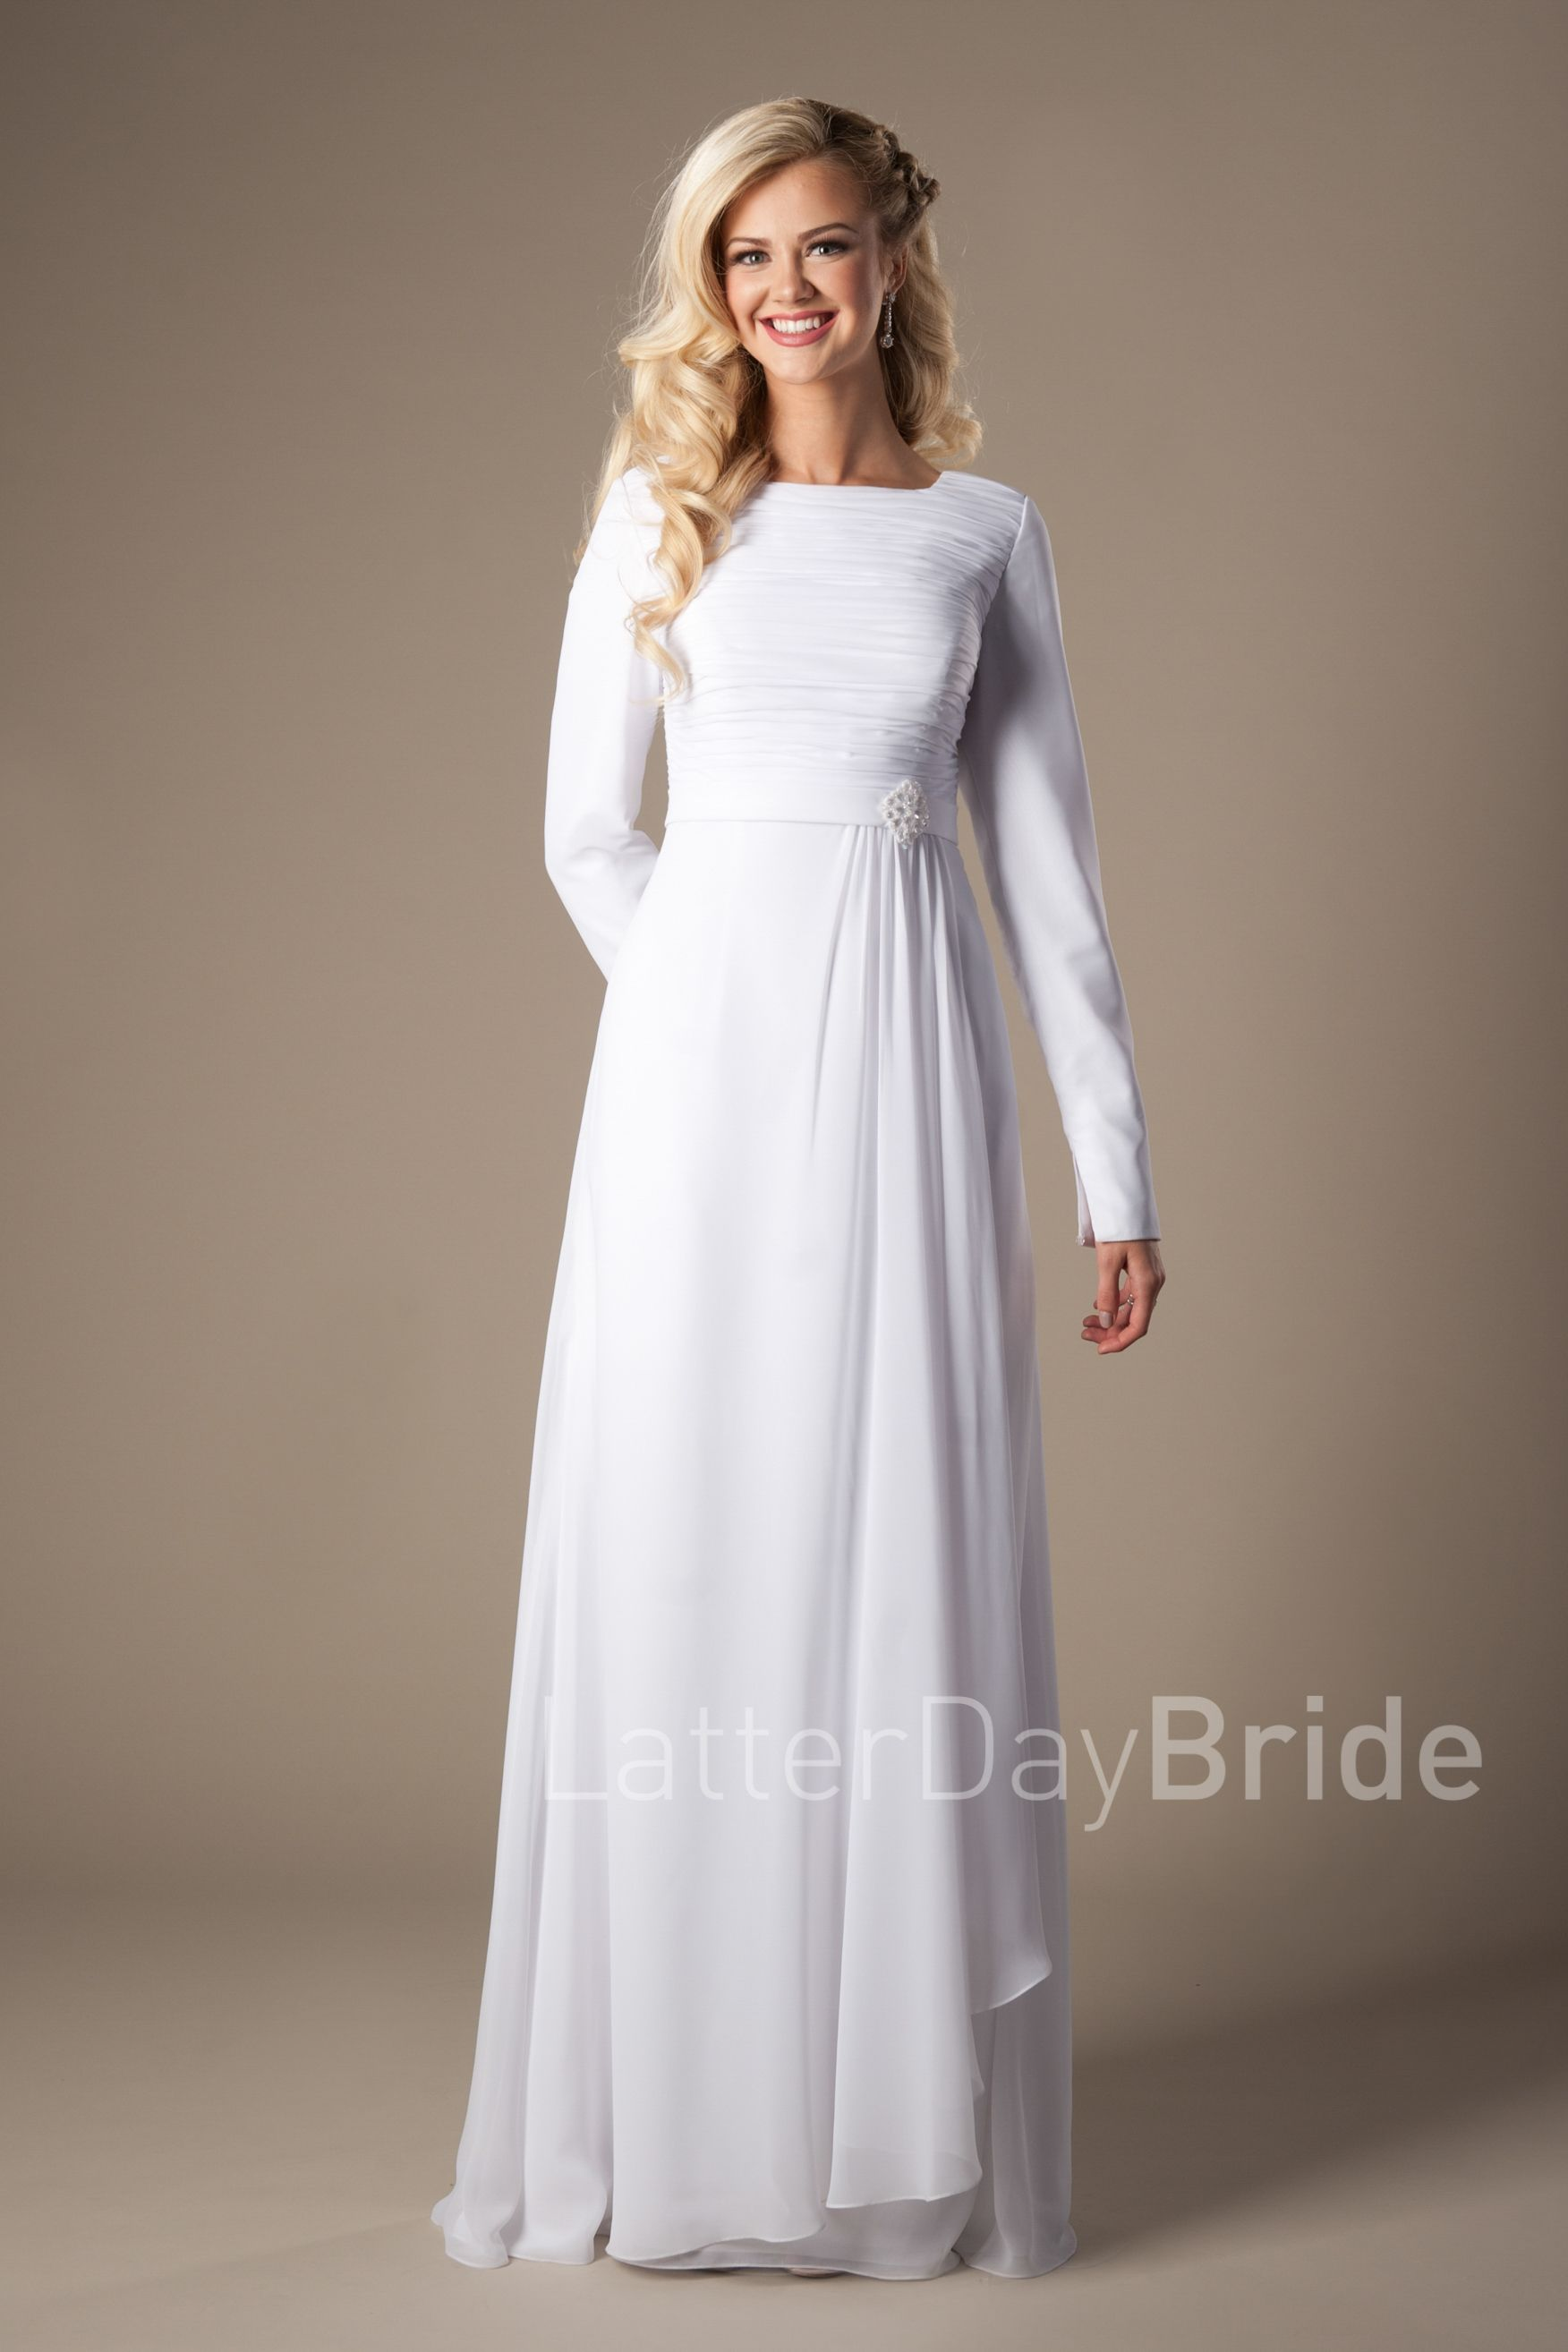 Image Result For Lds Sealing Dresses Lds Temple Dress Temple